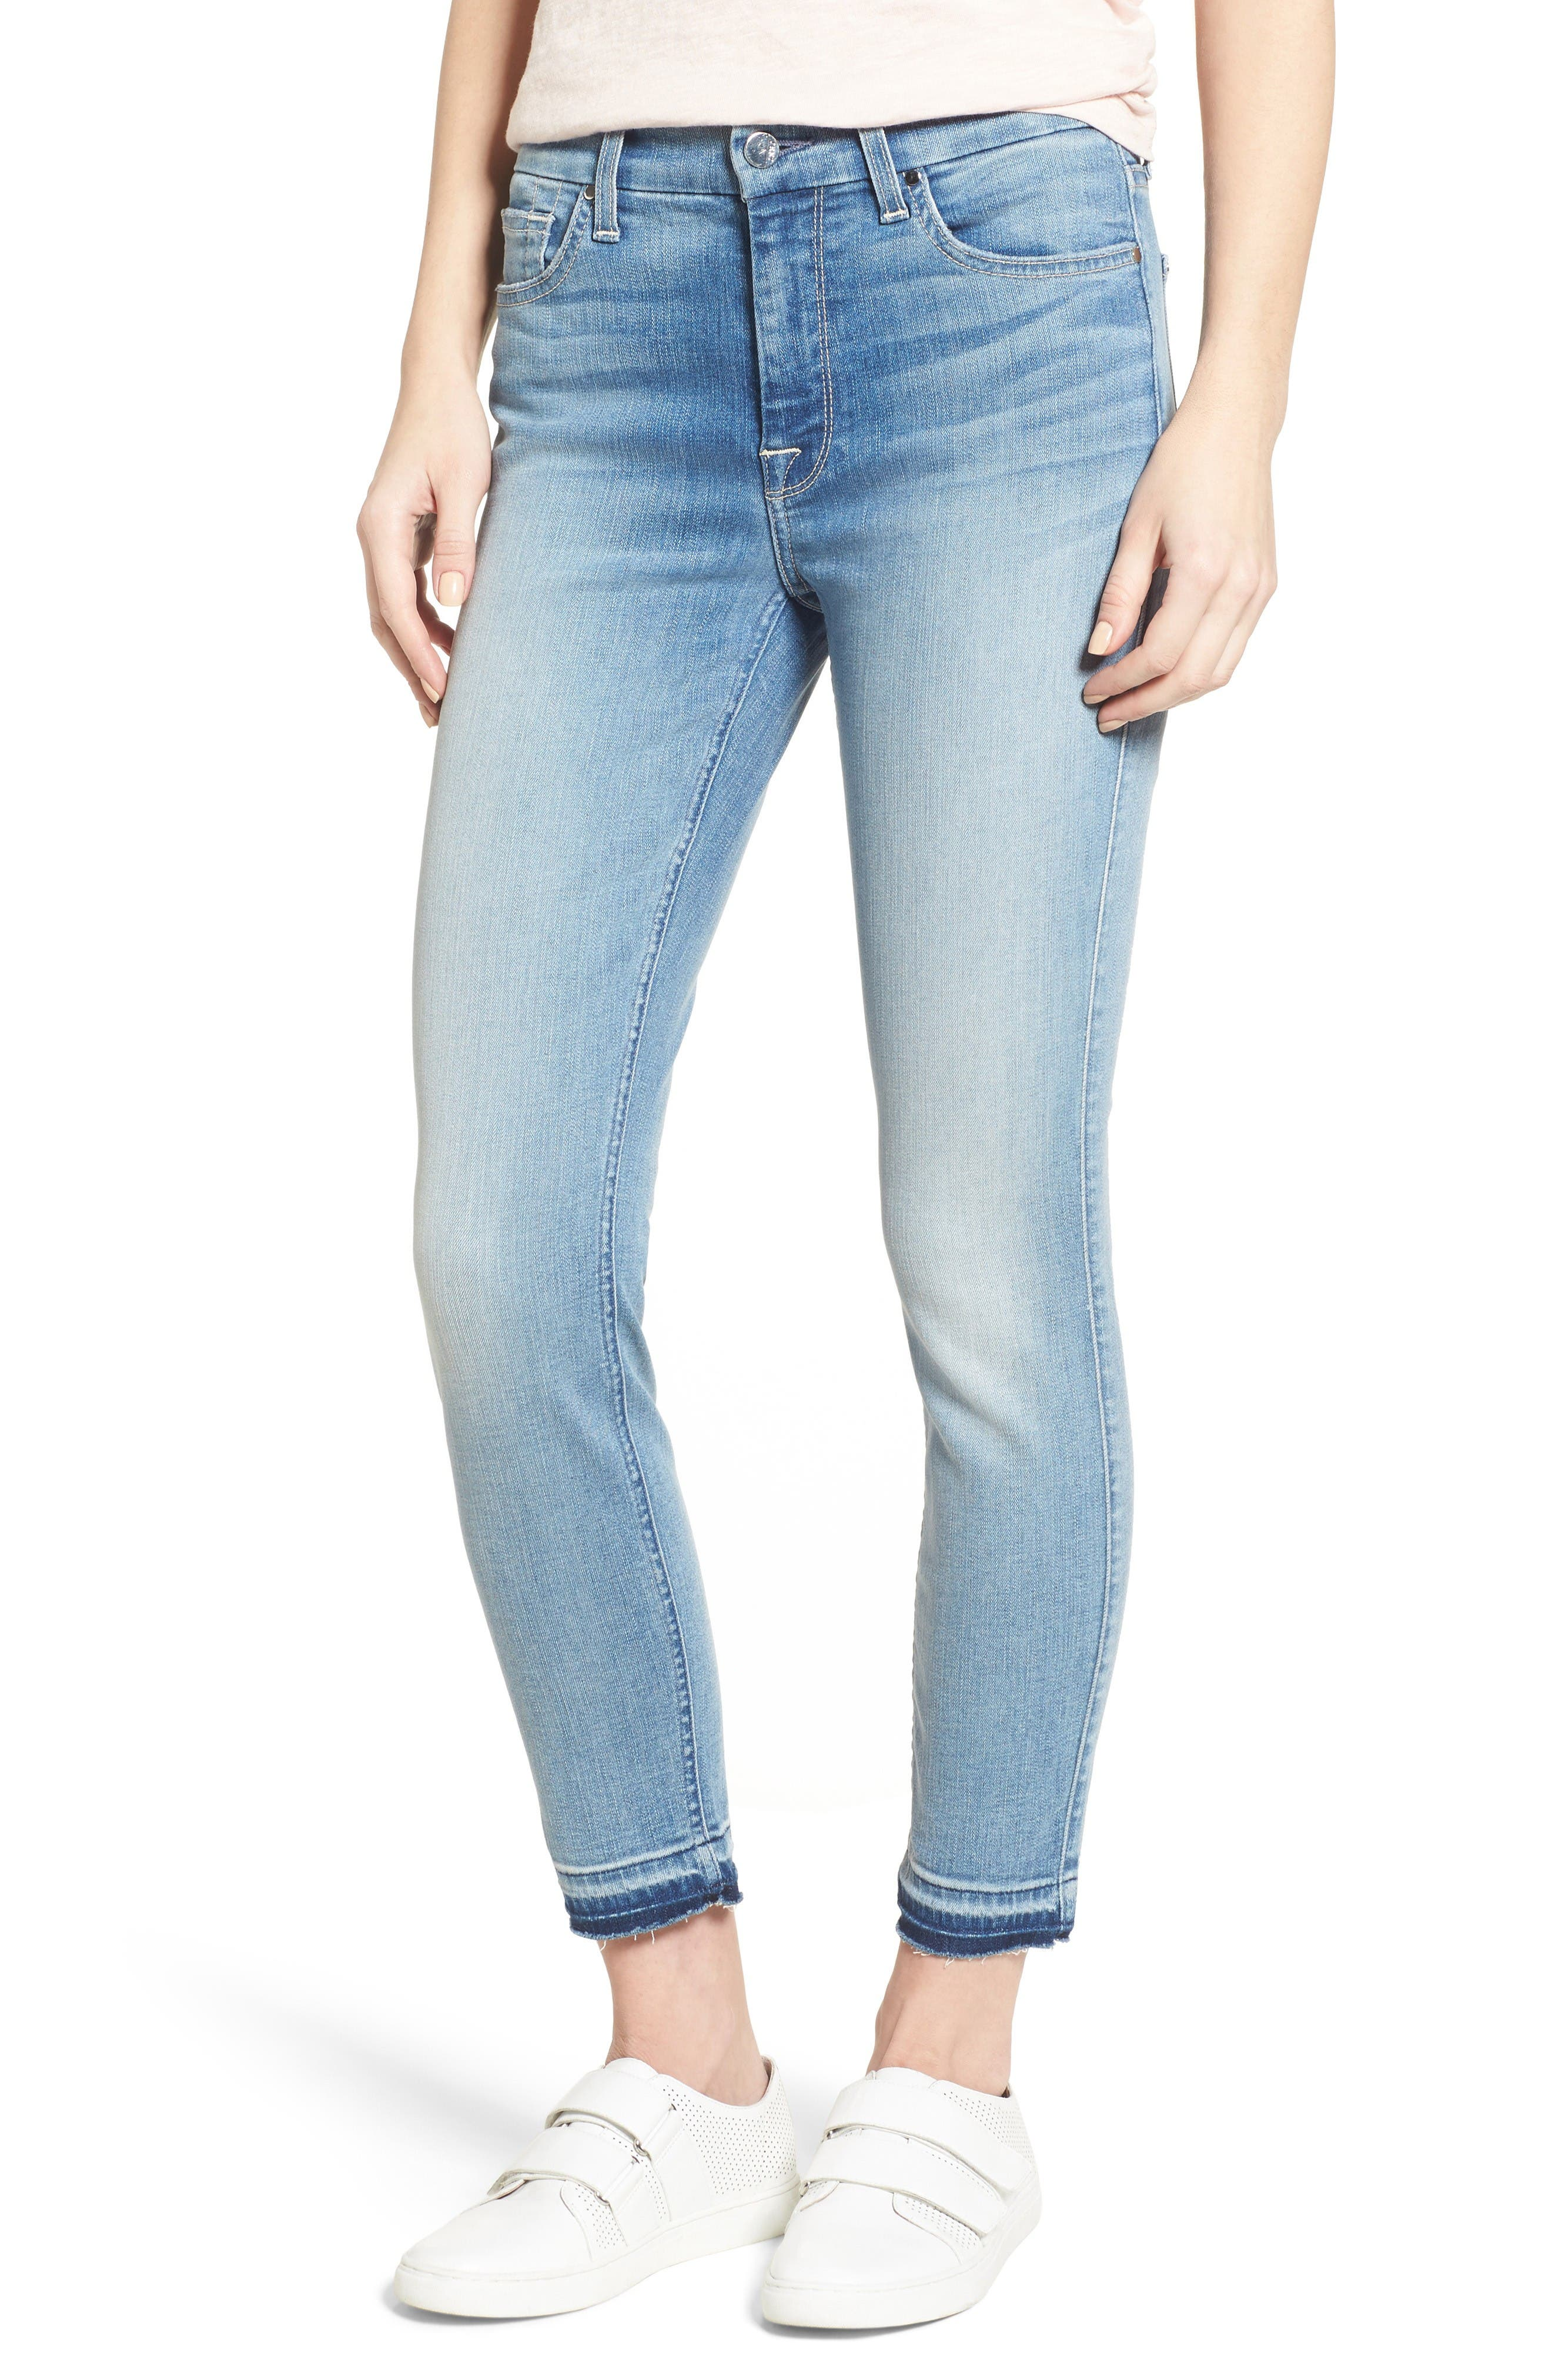 Jen7 Release Hem Stretch Ankle Skinny Jeans (Skyline Washed Blue)